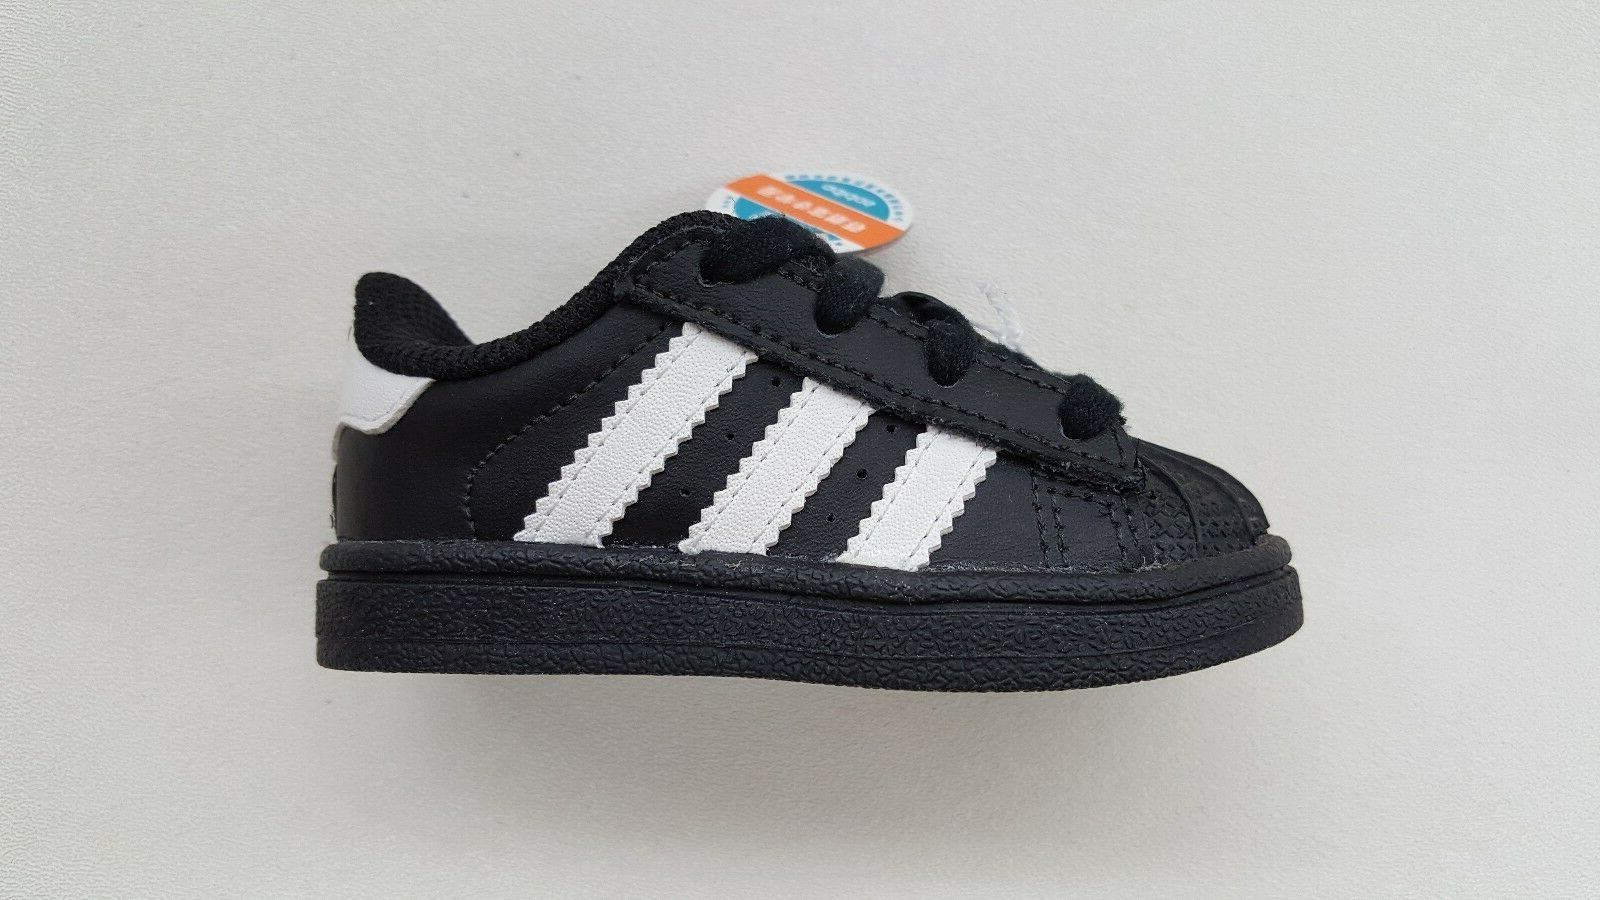 ADIDAS ORIGINALS SUPERSTAR BLACK WHITE TODDLER BABY SIZE SNE